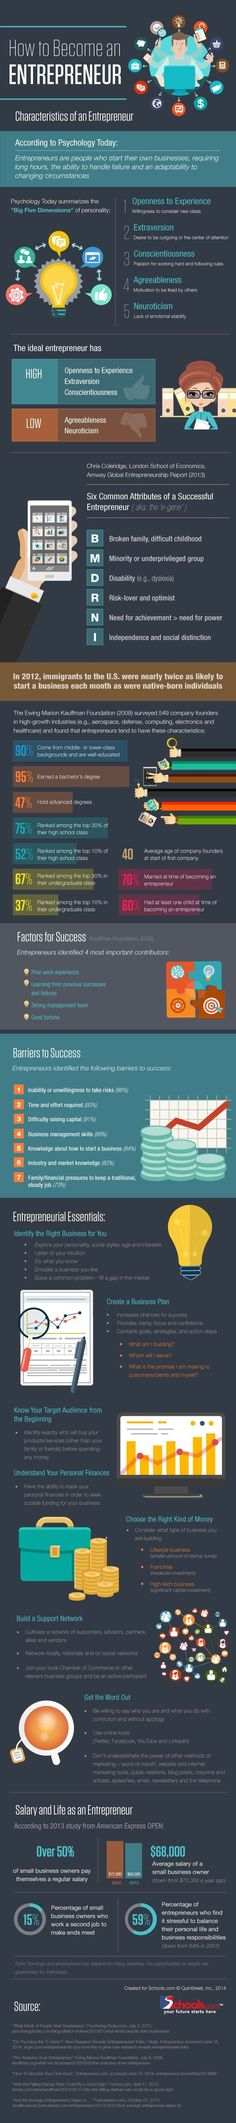 To know more log on to www.extentia.com (file://www.extentia.com/) #Extentia #Entrepreneur #Startup